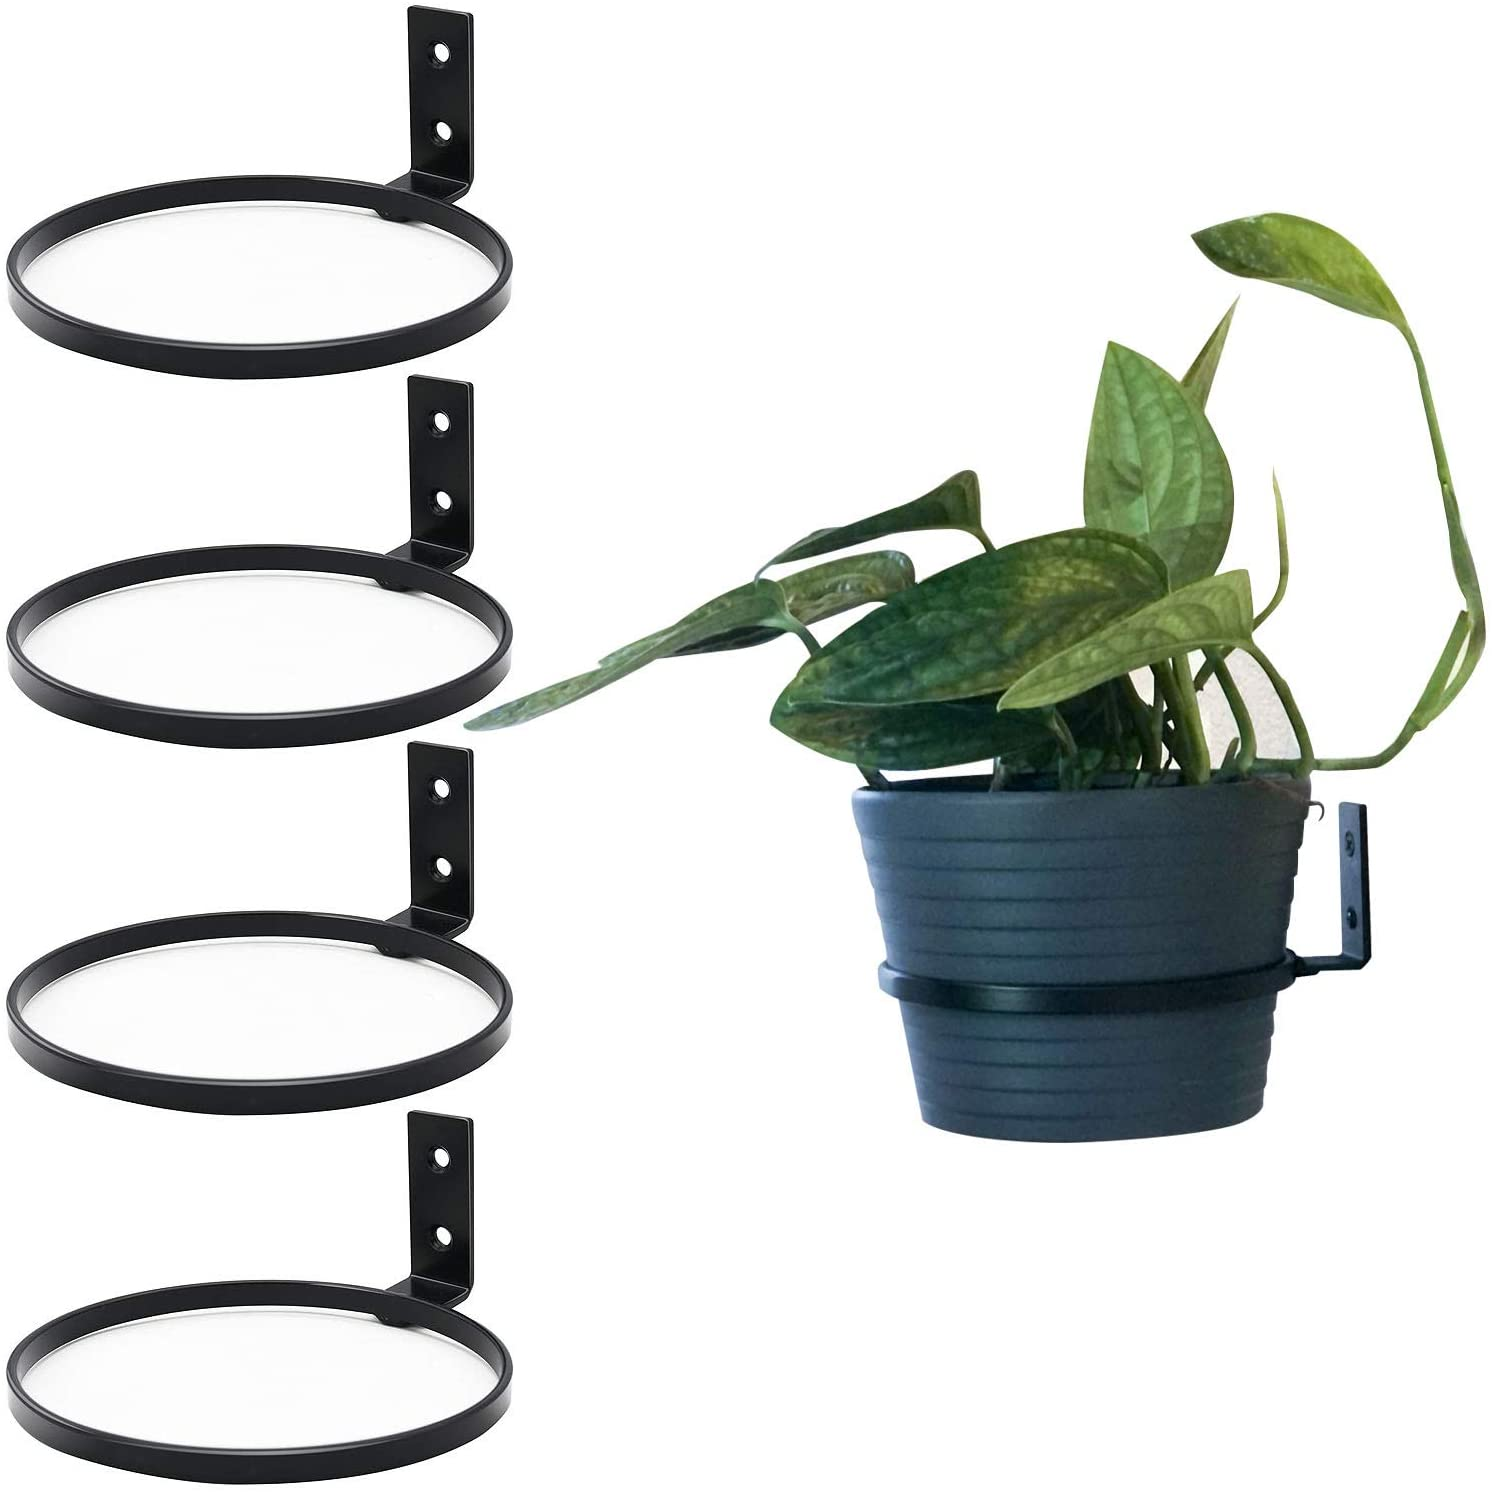 LINERY 4 Pack Matte Black Hanging Plant Pot Stand Flower Plant Pot Support Holder Ring Iron Anti-Rust Fit for Outdoor/Indoor Home Decoration (S)